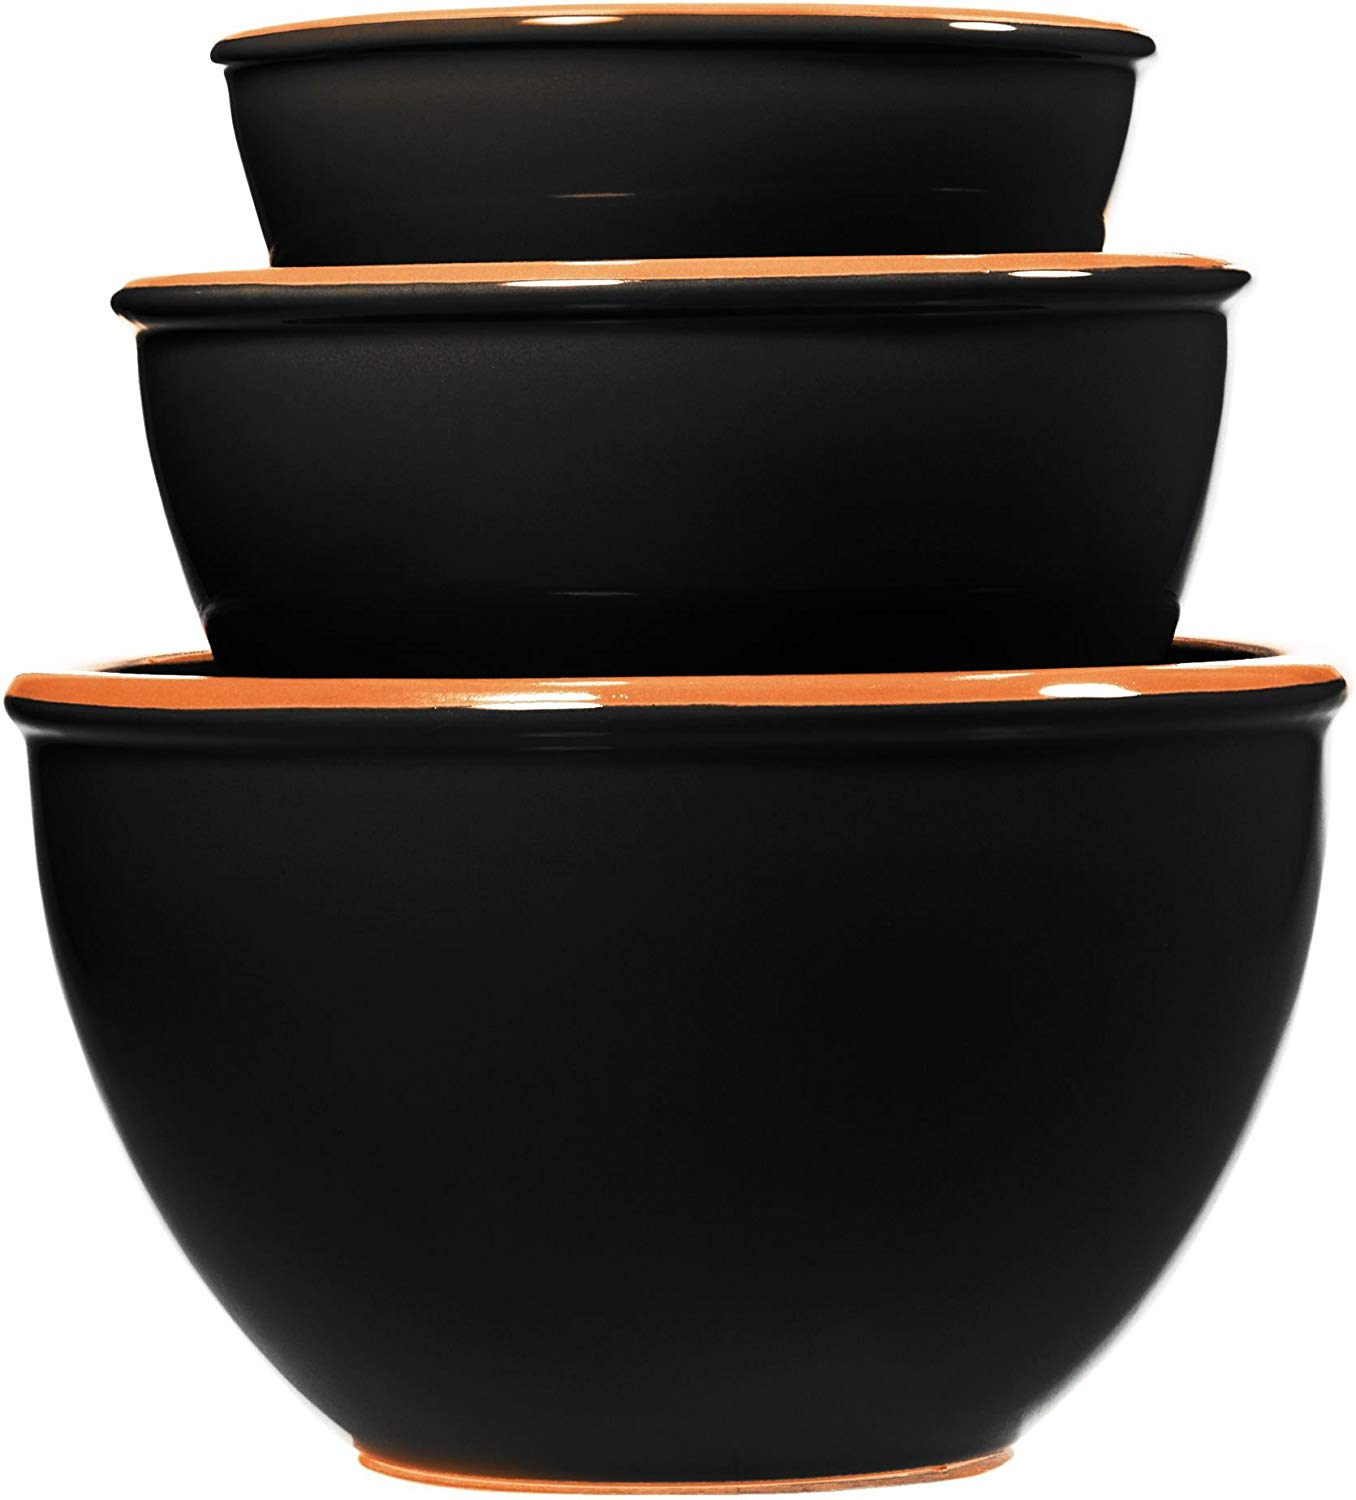 Home Essentials & Beyond Kitchenware Bakeware Ceramic Set of 3 Terracotta Black Mixing Prep Serving Nesting Bowls Kitchen Utensil Perfect For Serving Mixing, Whisking And Pouring